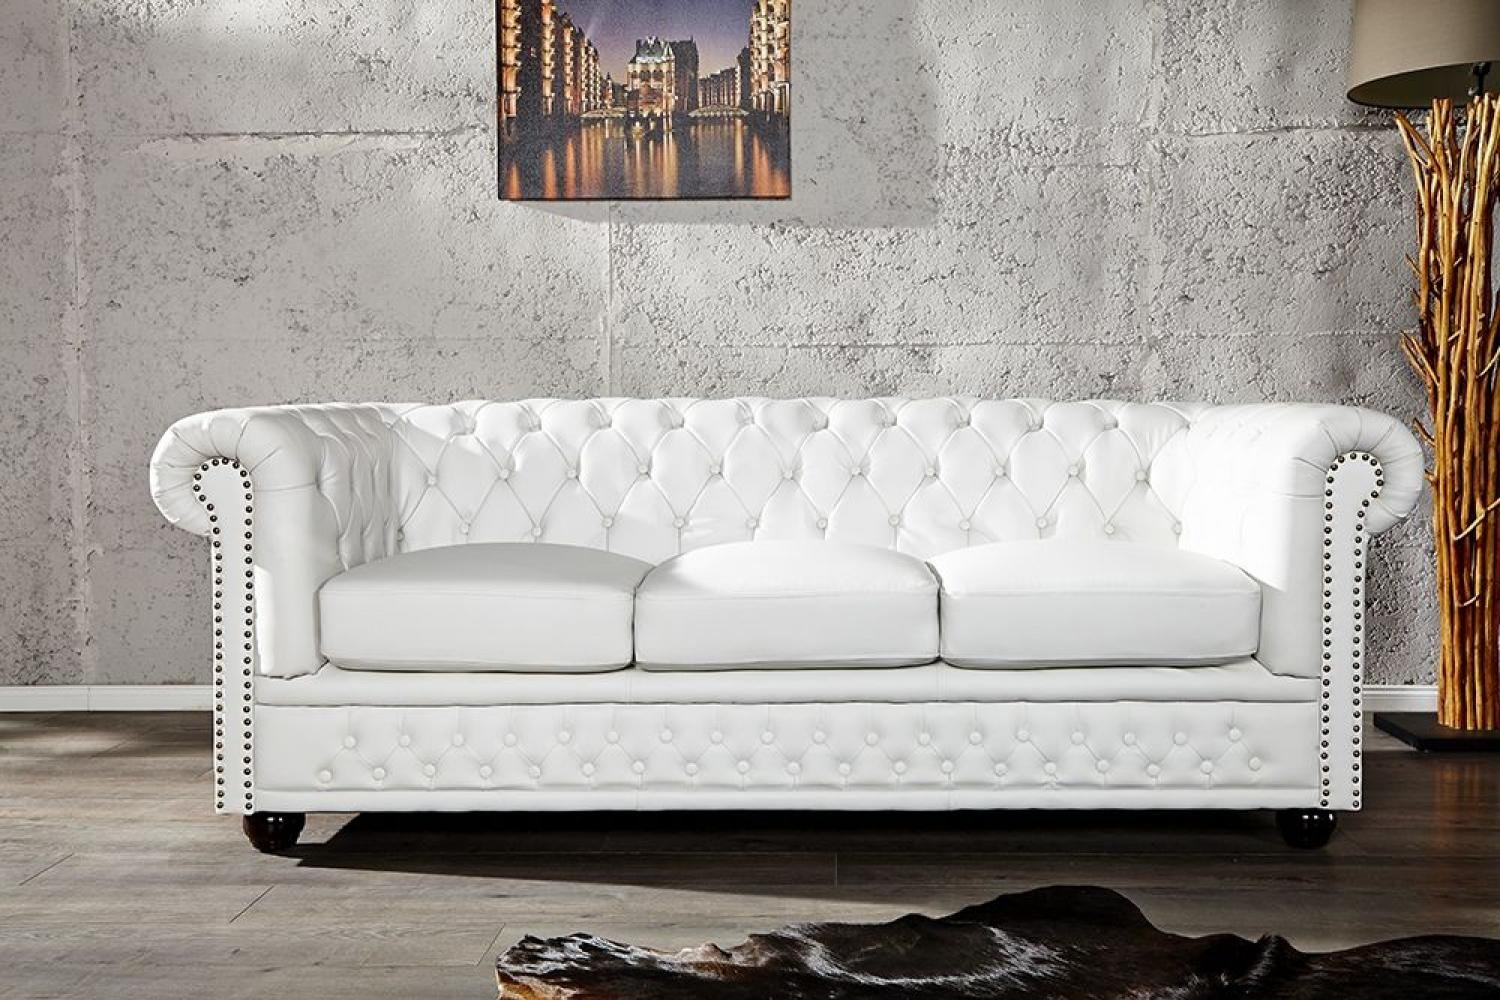 Loungebank Woonkamer Photos Canapé Chesterfield Cuir Blanc